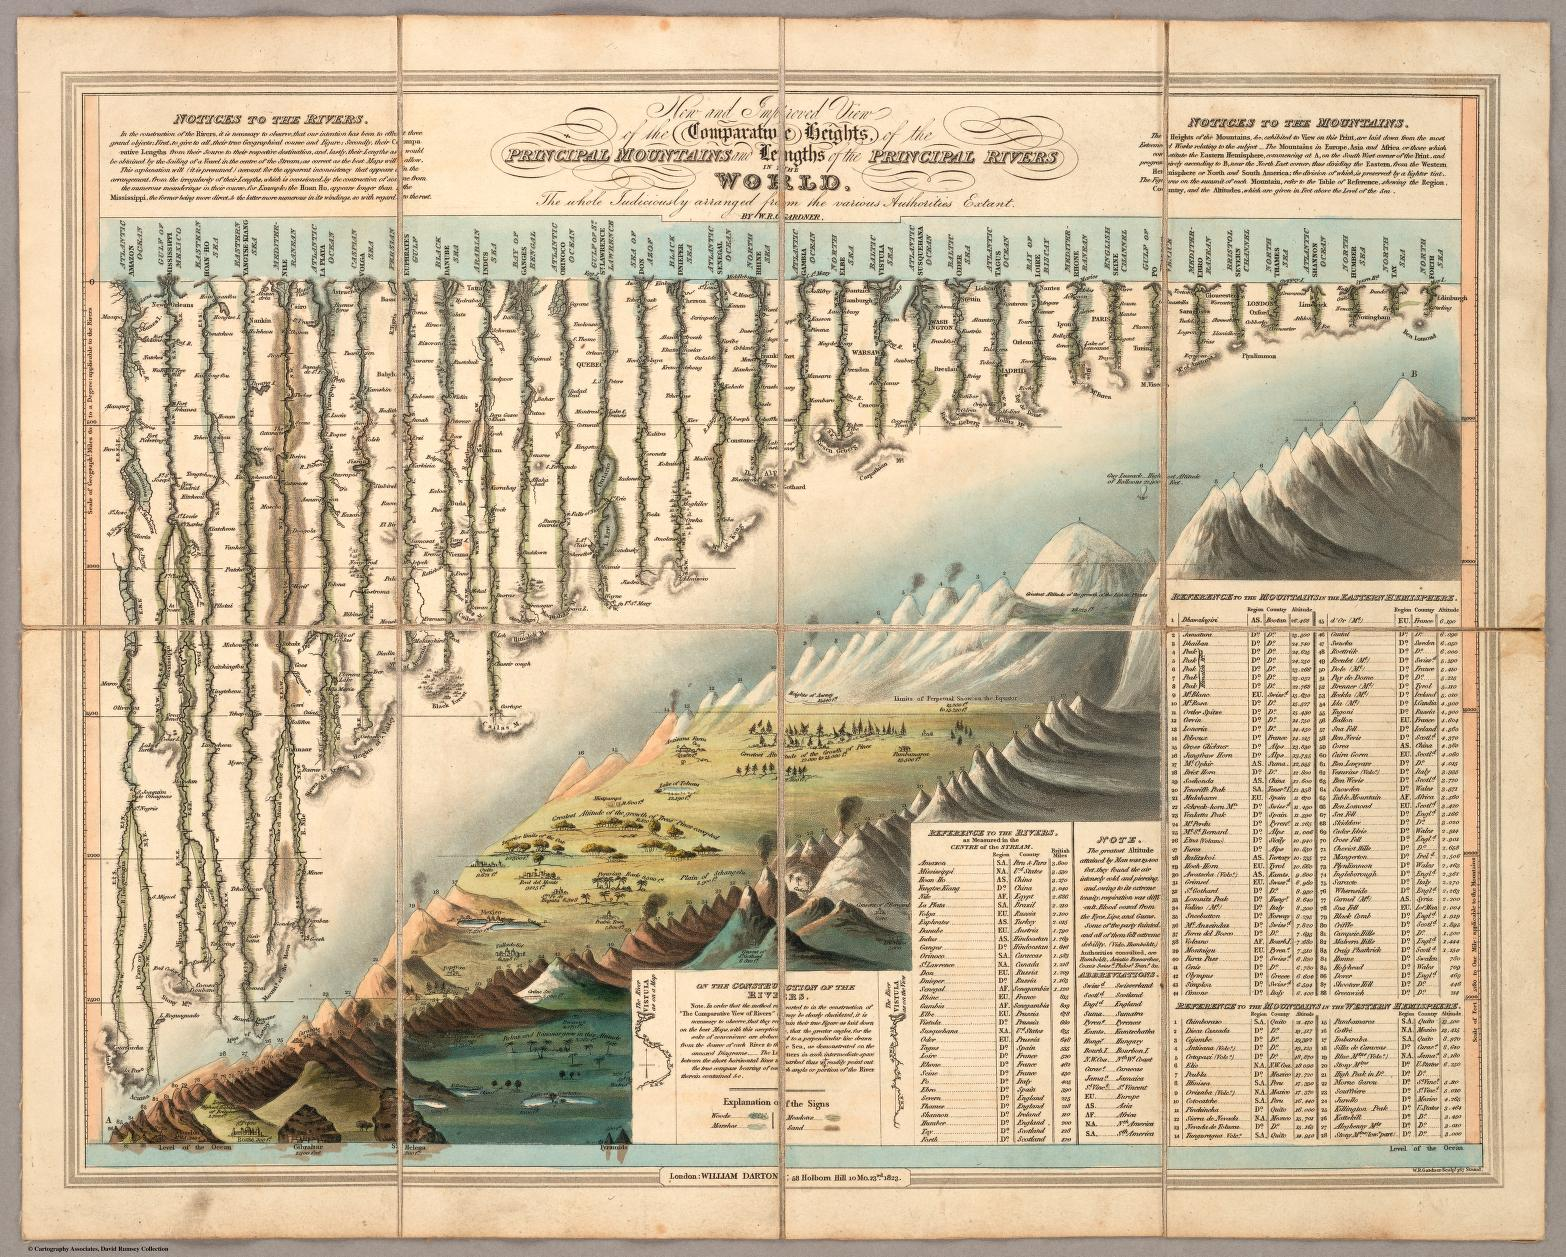 Gardner's Comparative Heights of Mountains and Rivers, 1823